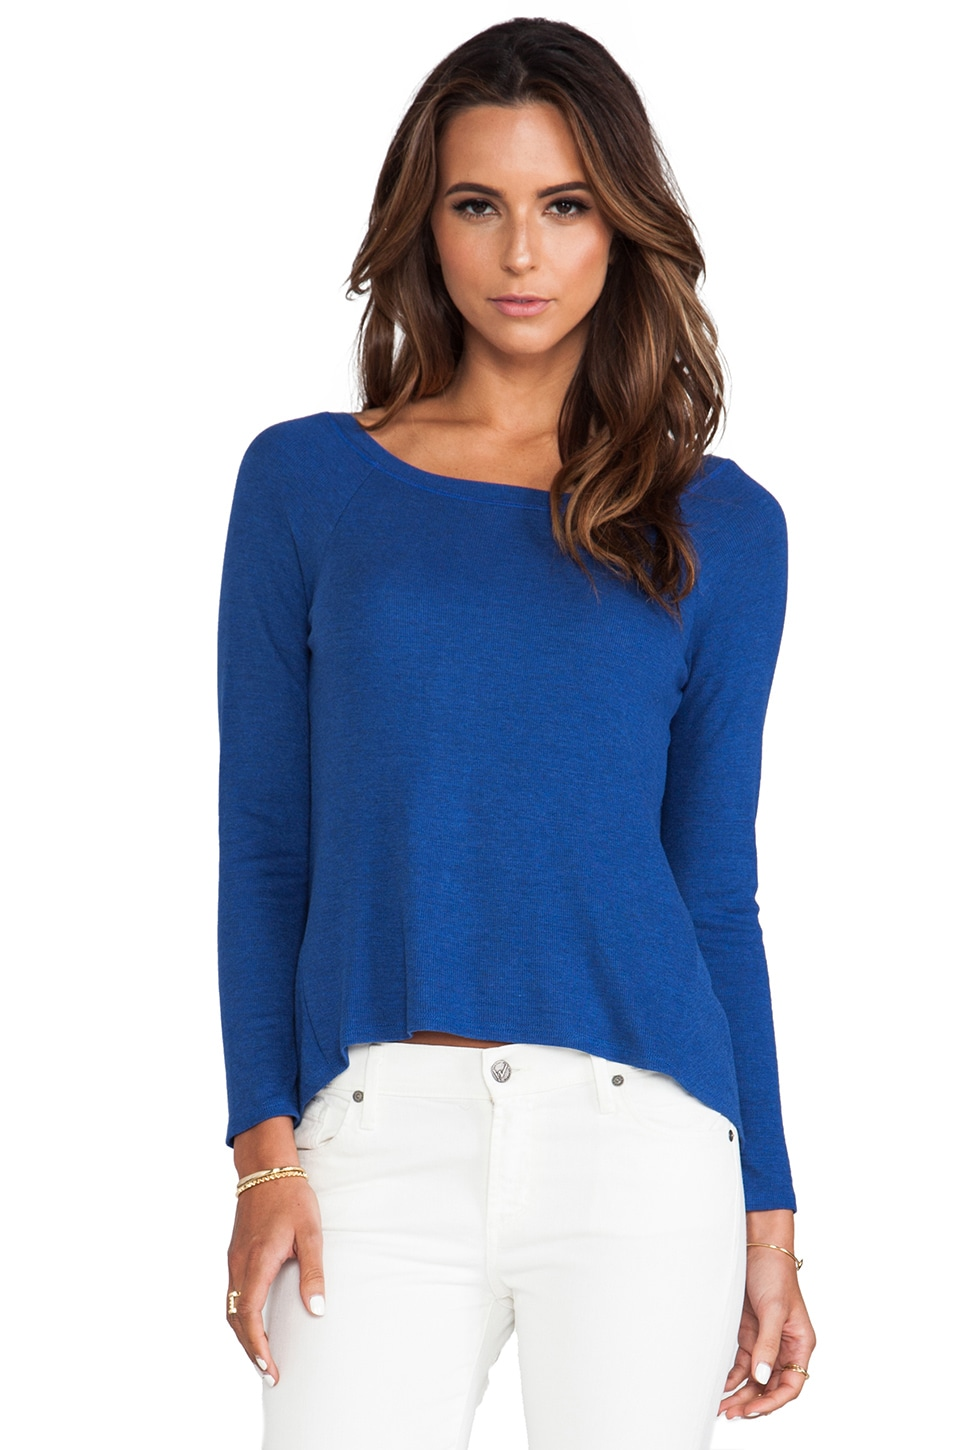 Heather V Back Top in Heather Cobalt